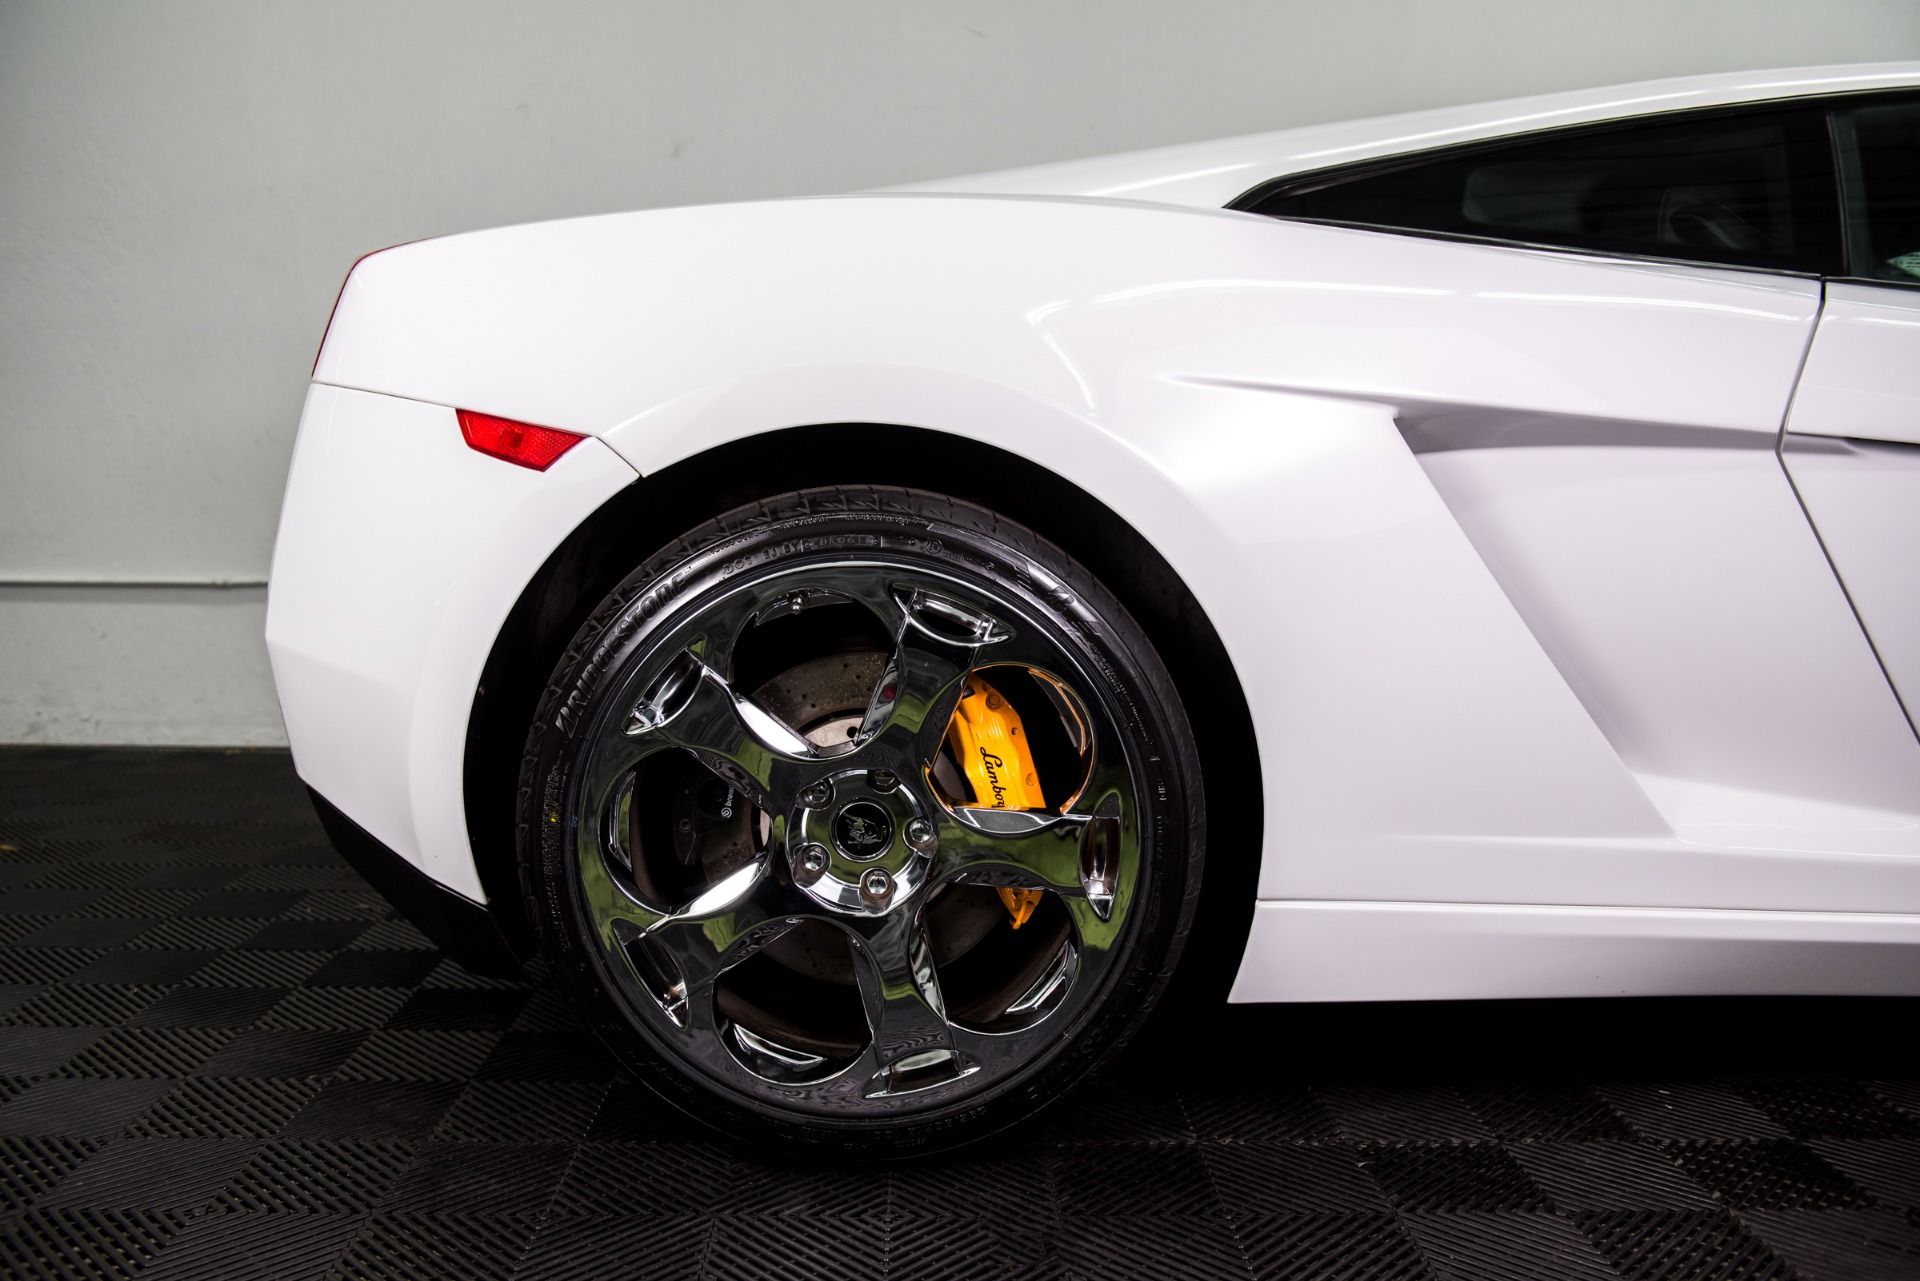 Used 2004 Lamborghini Gallardo Used 2004 Lamborghini Gallardo for sale Sold at Response Motors in Mountain View CA 8